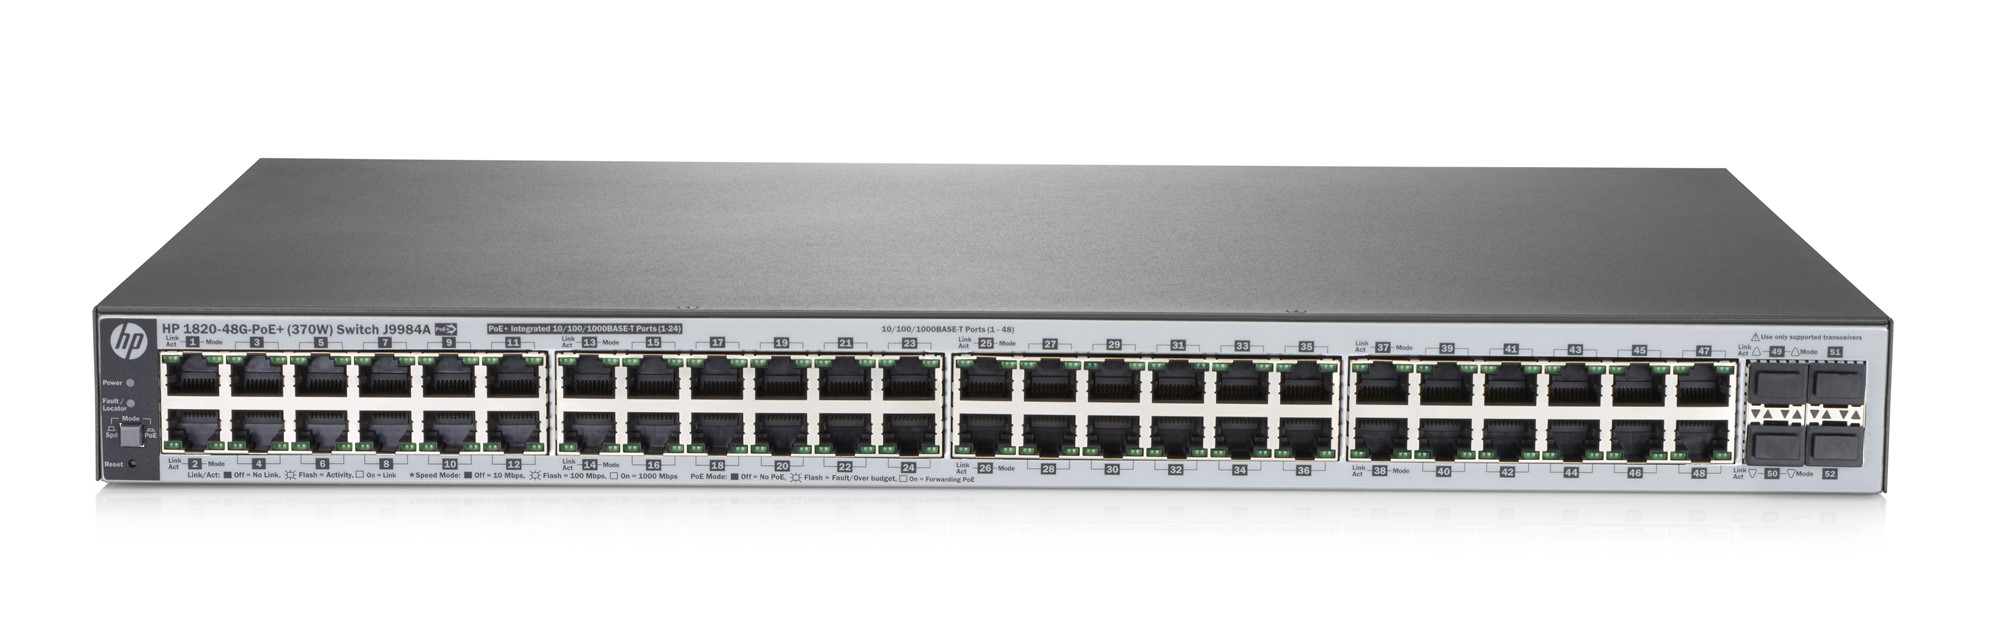 HPE J9984A 1820-48G-POE+ (370W) MANAGED NETWORK SWITCH L2 GIGABIT ETHERNET (10/100/1000) POWER OVER (POE) 1U GREY